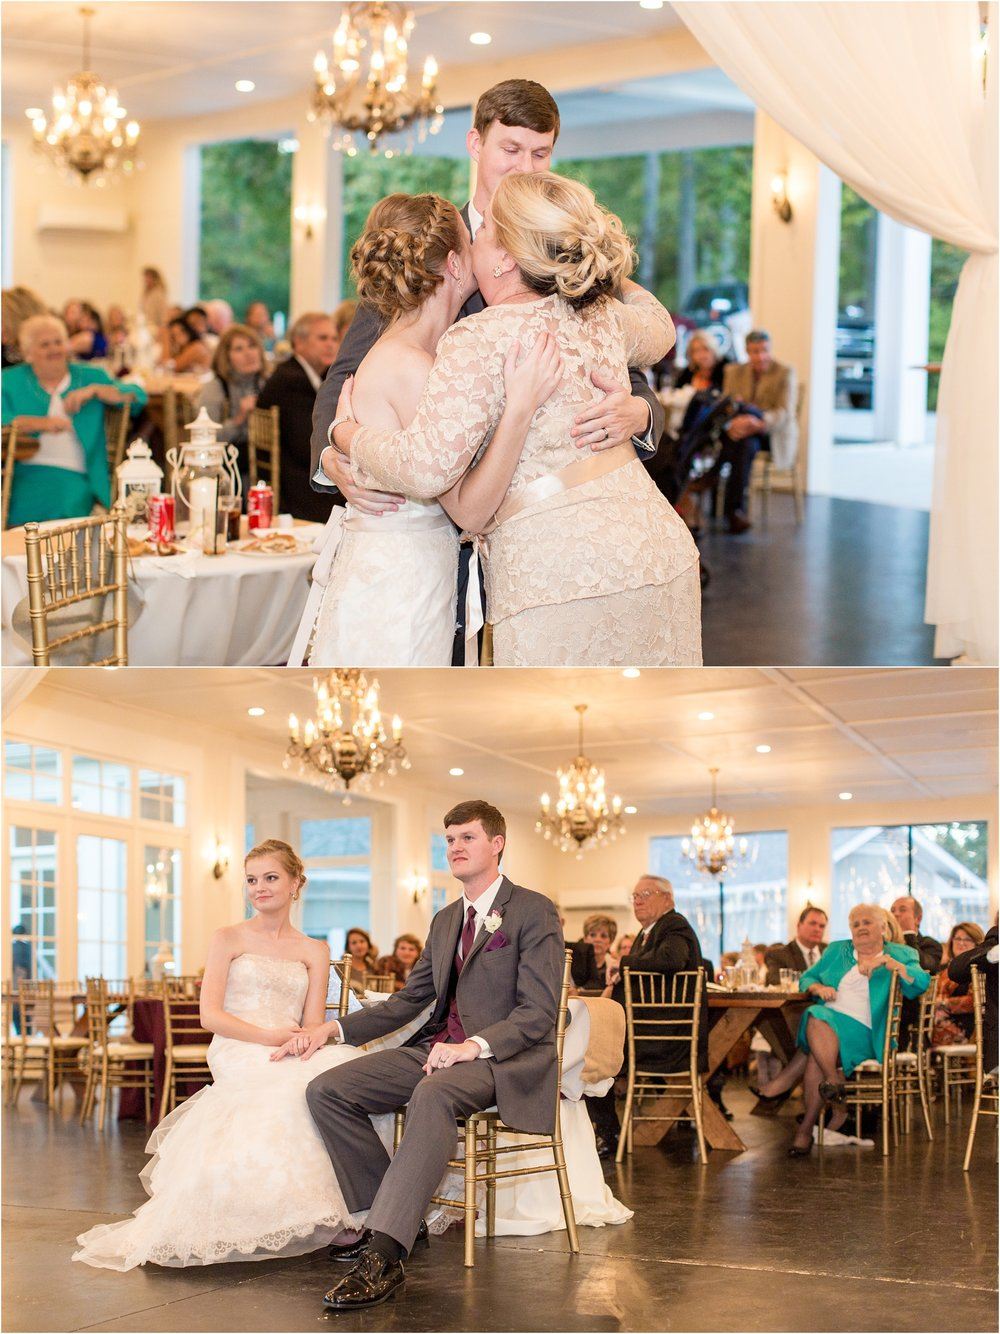 Savannah Eve Photography- Perkins Wedding- Blog-38.jpg